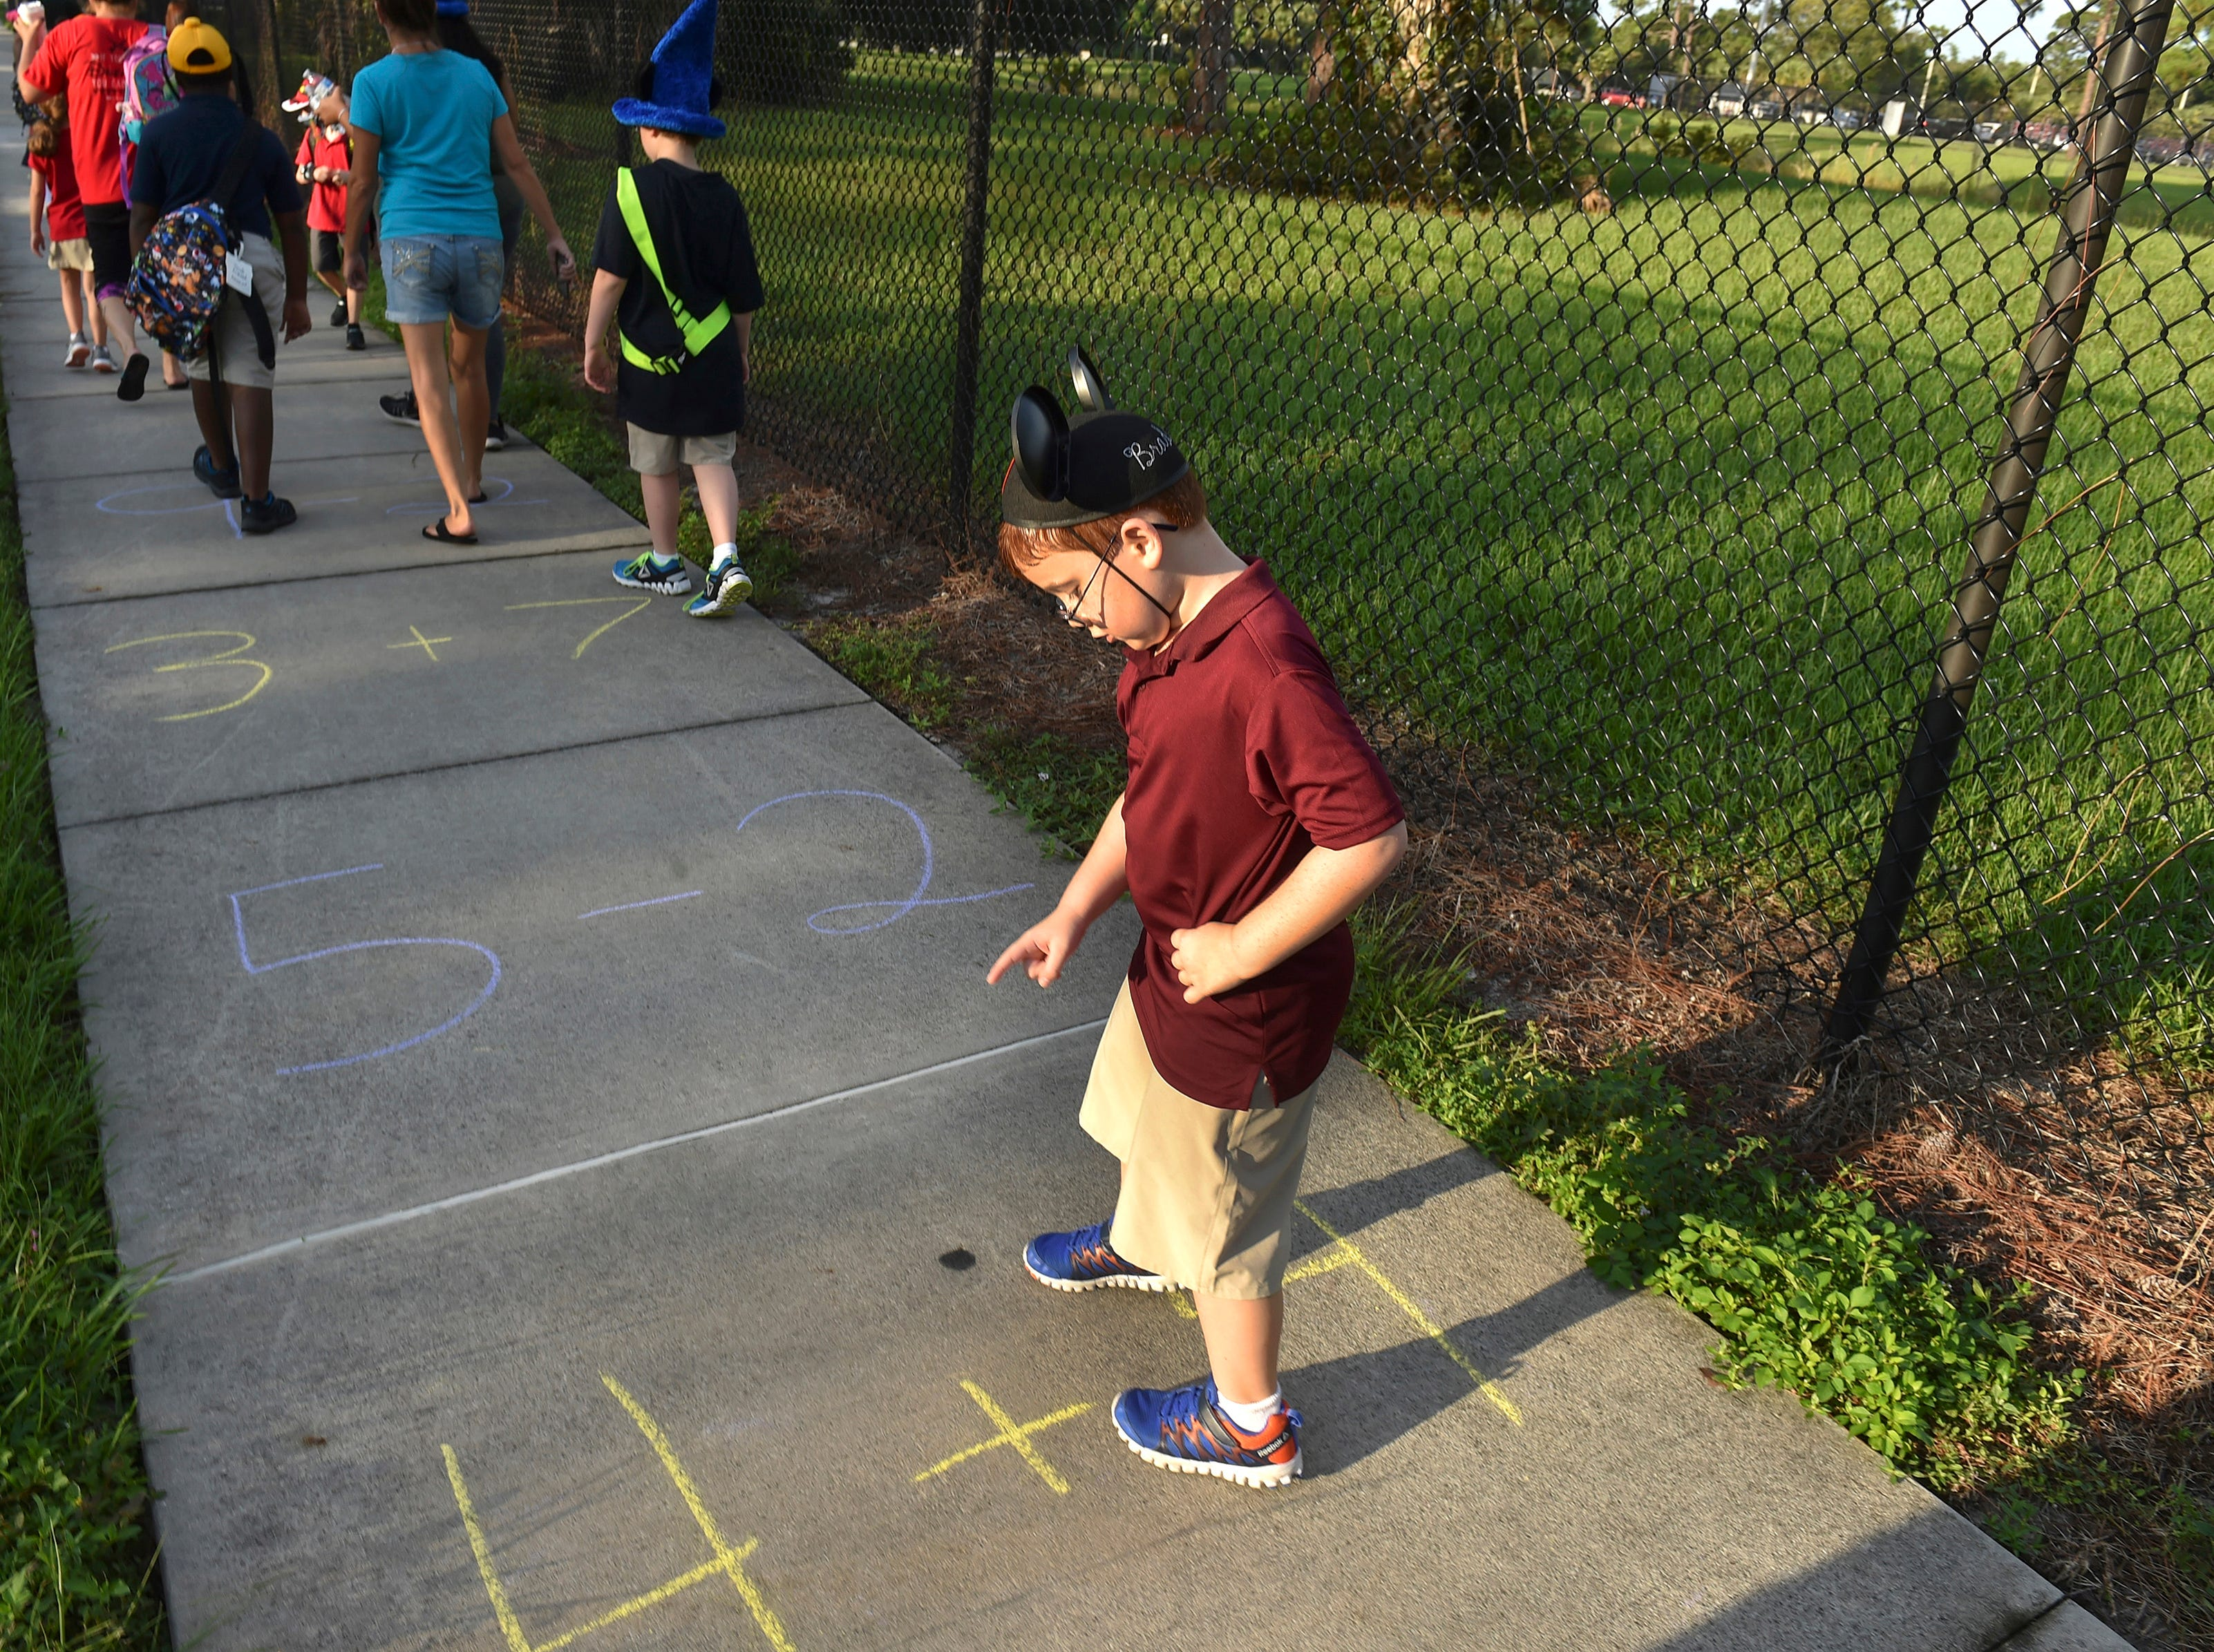 """Brady Trumble, 6, a first grader at Vero Beach Elementary School, stops to solve the math problems along the sidewalk on 16th Avenue during the Walk to School event for students Wednesday morning, Sept. 5, 2018 in Vero Beach. """"This is our walk to school that we do regularly with our PTA (Parent Teacher Association) to promote healthy habits and get kids starting the day with exercise,"""" said Rachel Moree, Assistant Principal at the school. """"We want them to develop healthy habits and spend time with their tribe in the morning, in a way to have healthy hearts."""" . Around 20 students, parents and faculty members walked from the Boys and Girls Club building to the school, with a law enforcement escort, while wearing silly hats and stopping to play the chalk games and answer the challenges inscribed on the sidewalk along the way. """"I love it, I love this school,"""" said Kayla Armand, parent of students Jacob, 4, and Ethan, 8, Armand, (not pictured). """"I love that they are just trying to encourage kids to come to school, encourage parents to be more active in their kid's life and their kid's education, and this is a great way to bring families together."""""""